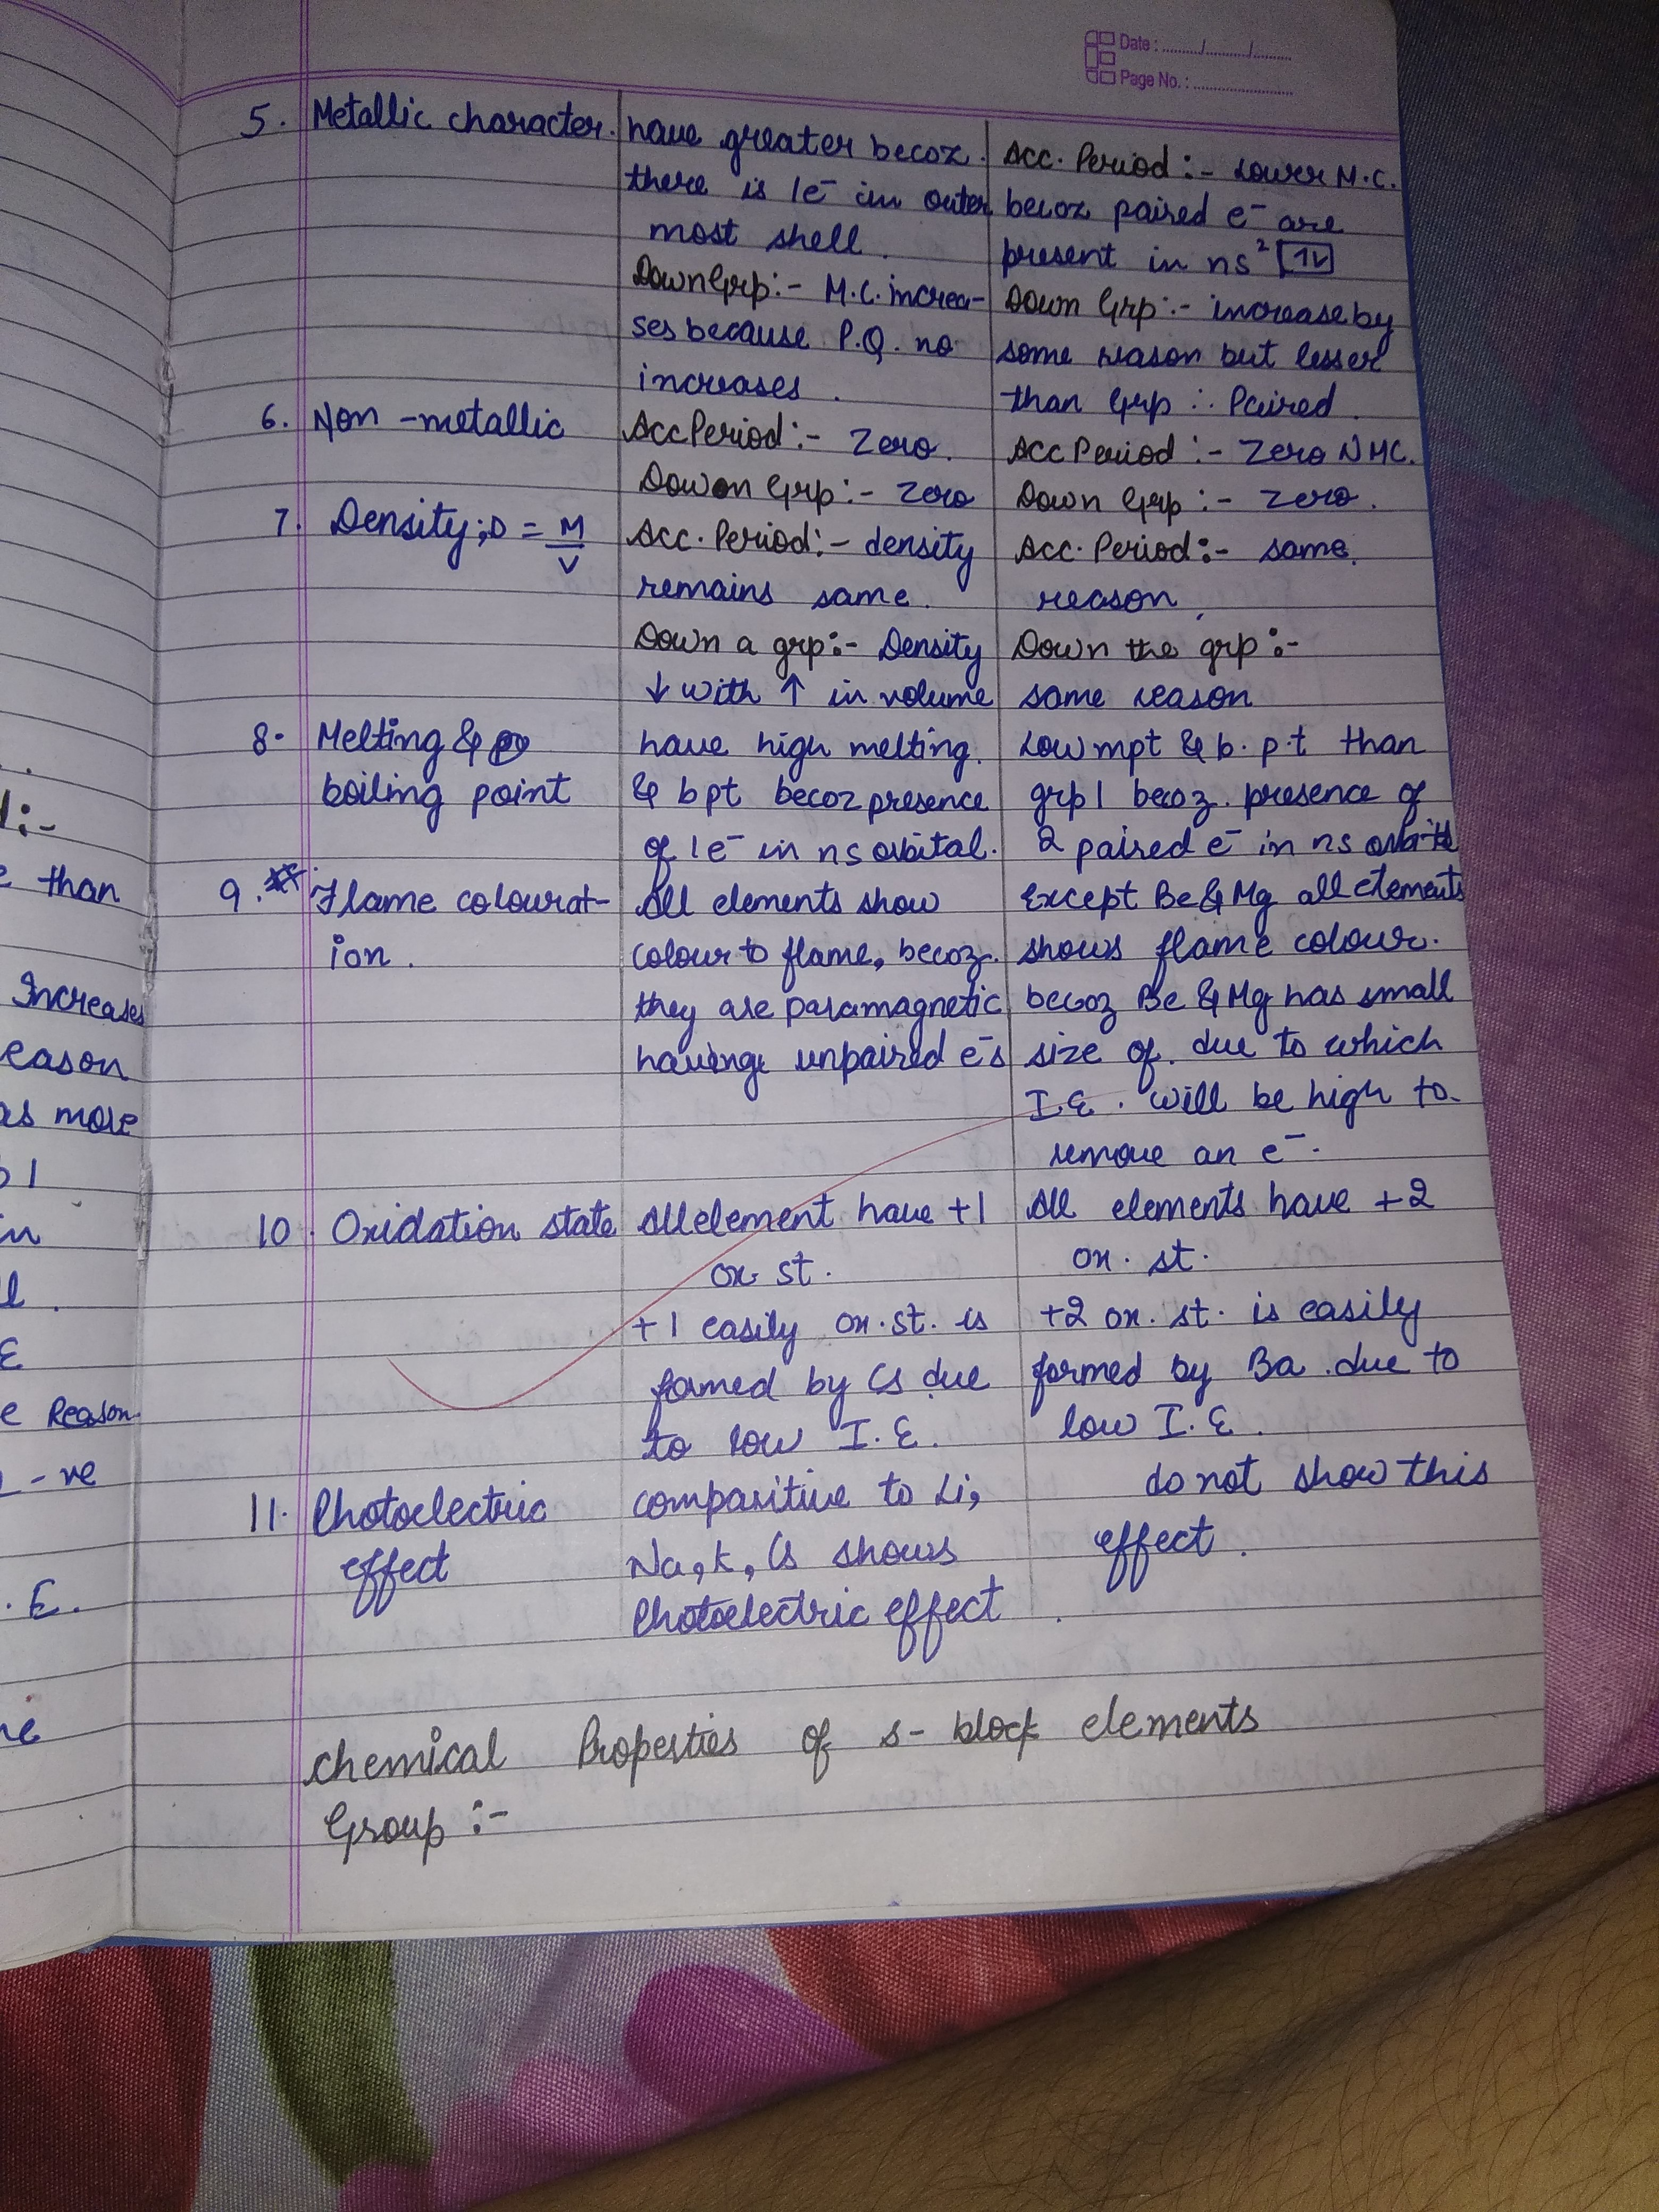 Class 11 chemistry chapter 10 notes - Brainly in